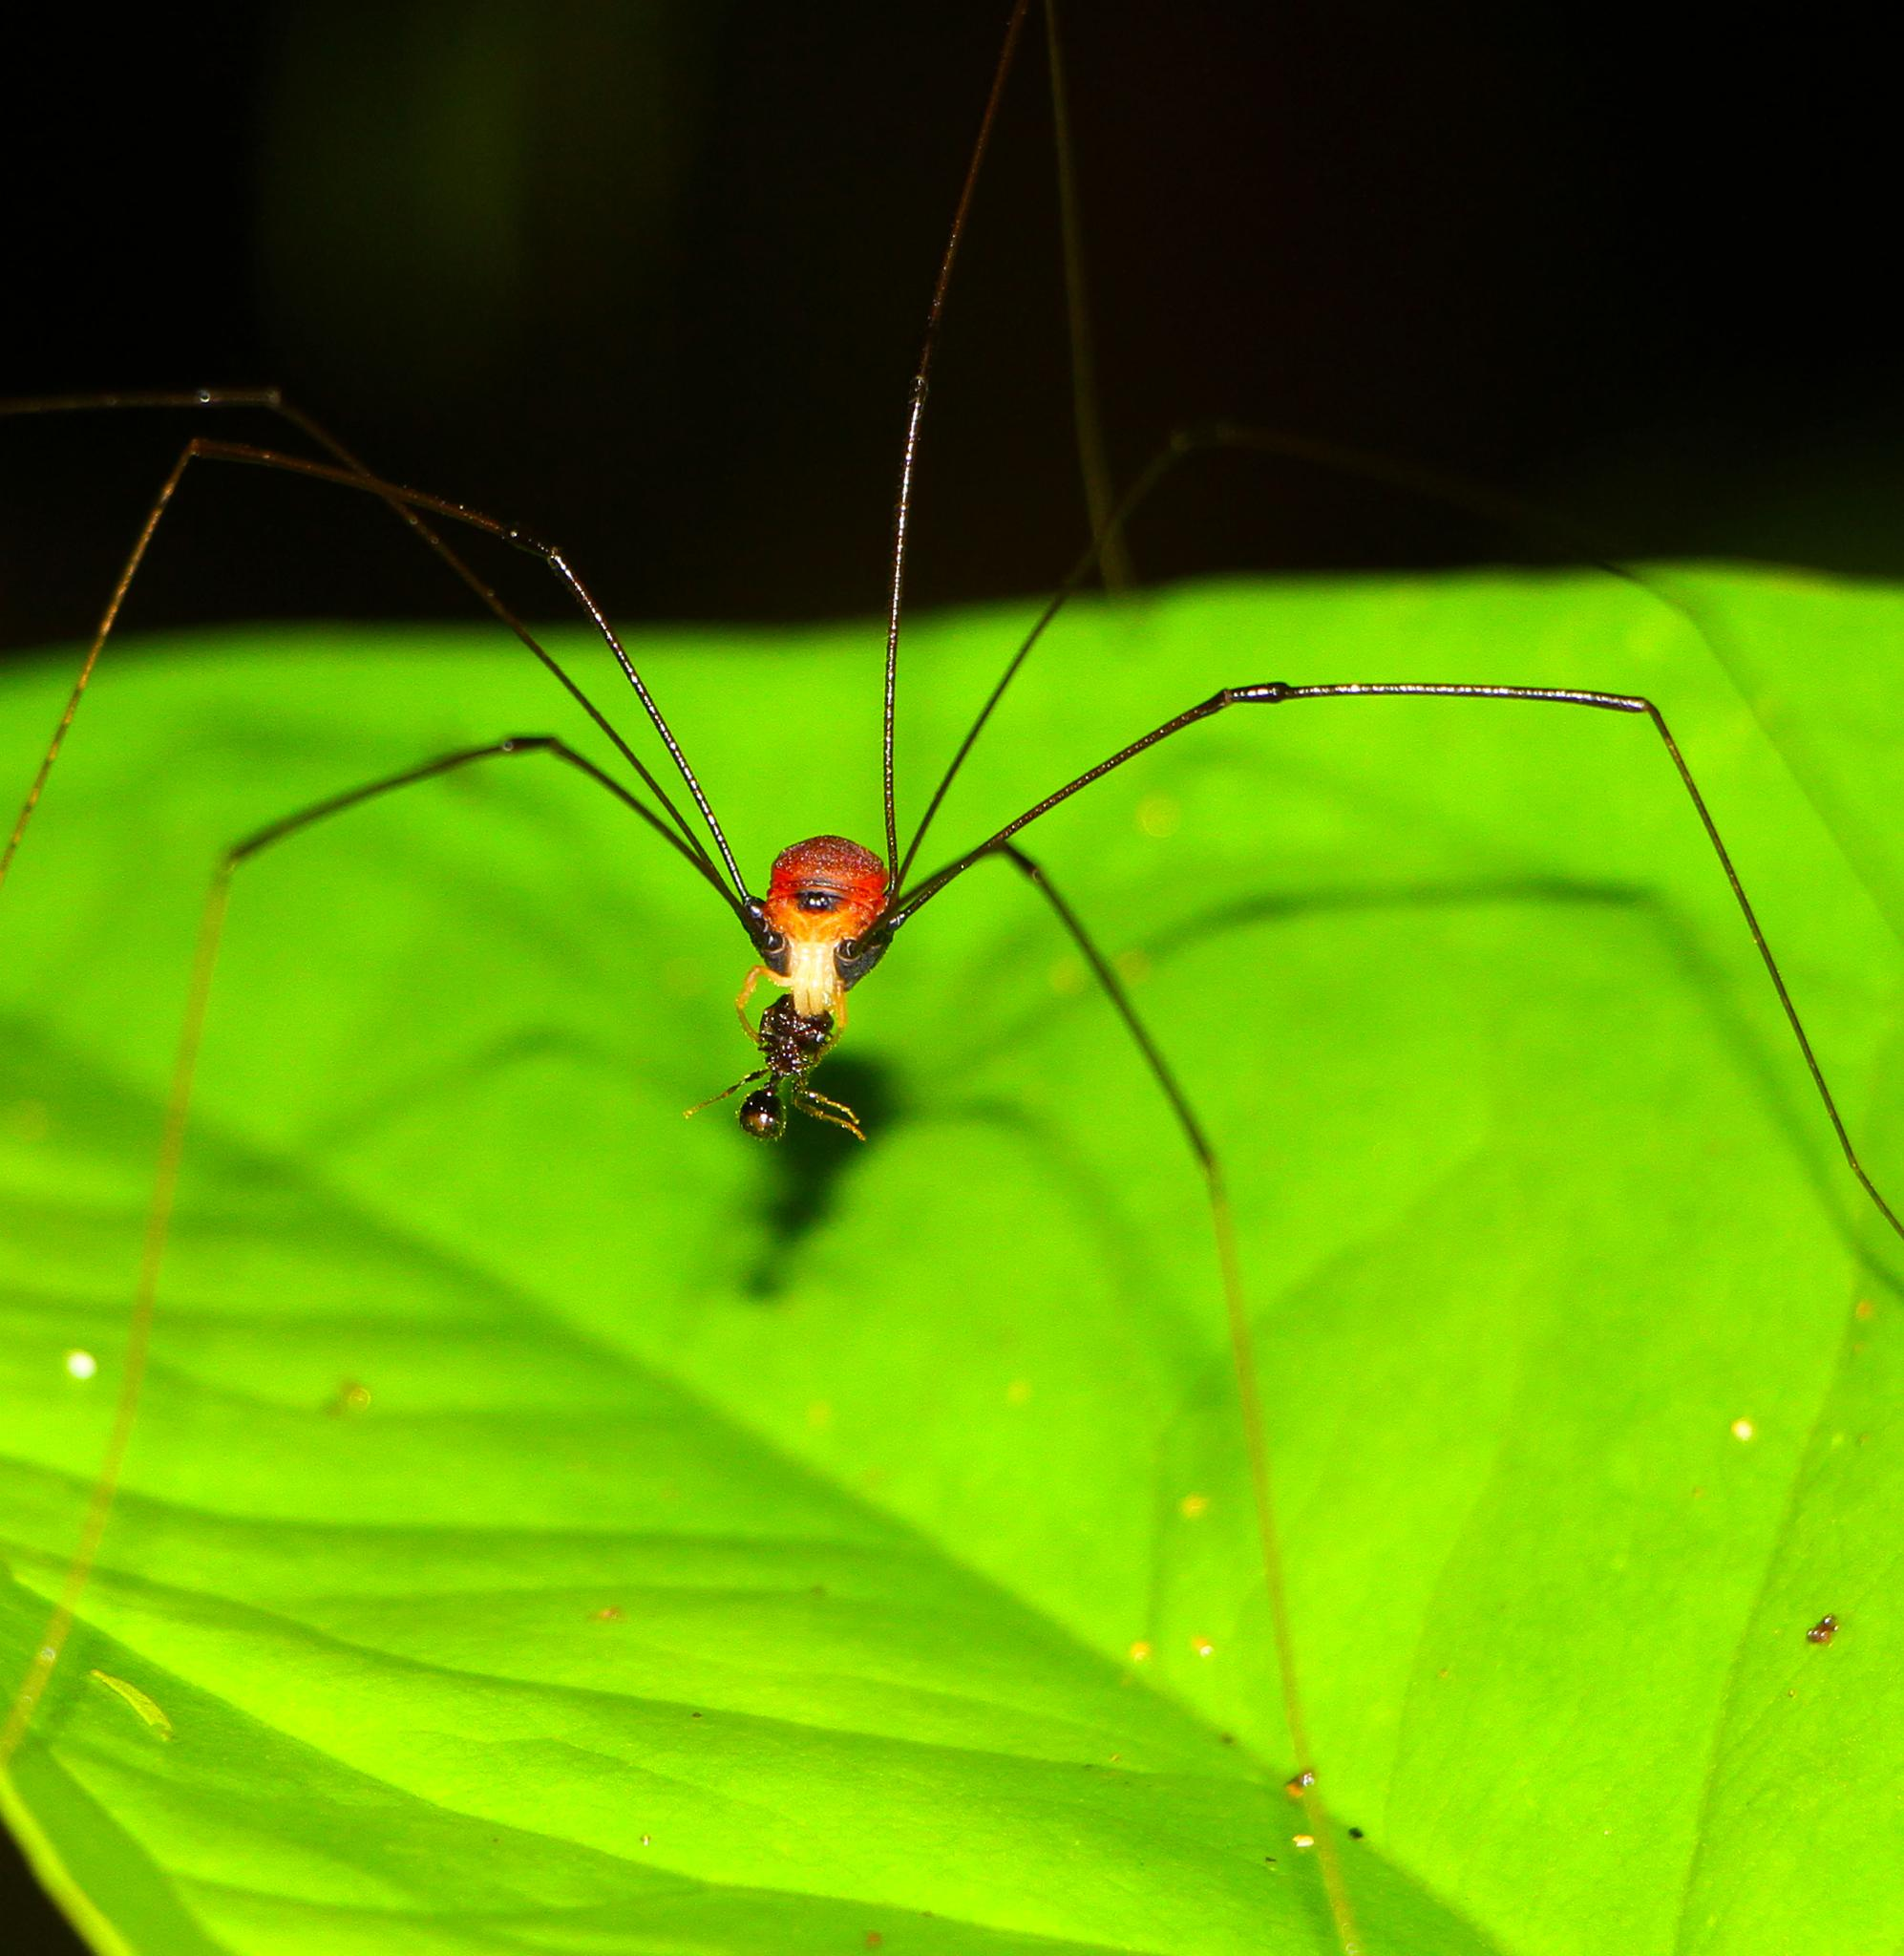 Spider eating ant by renzo.sturmo